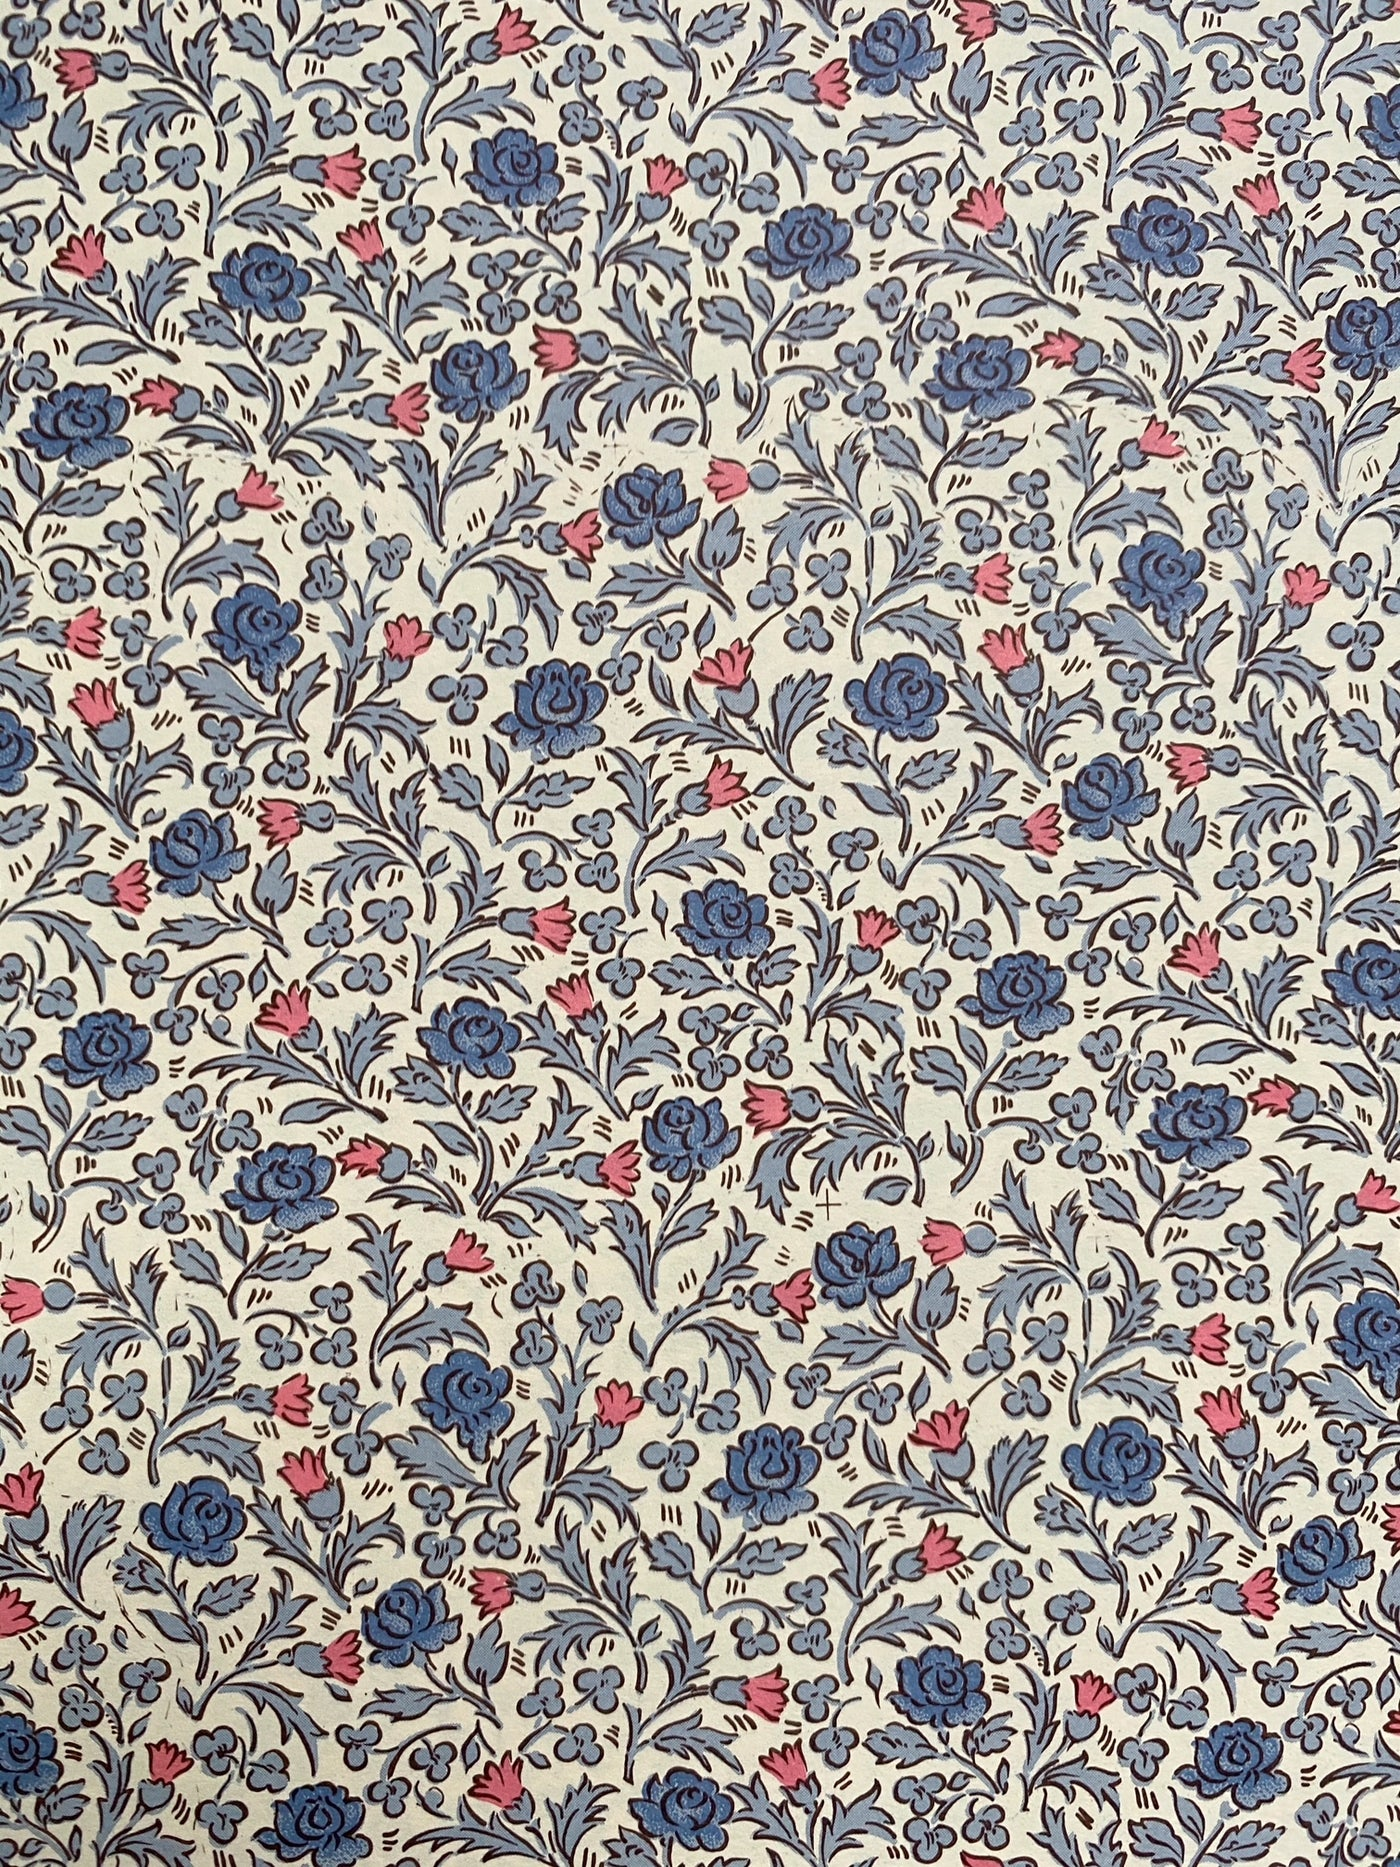 Paper - Blue & red petite flowers